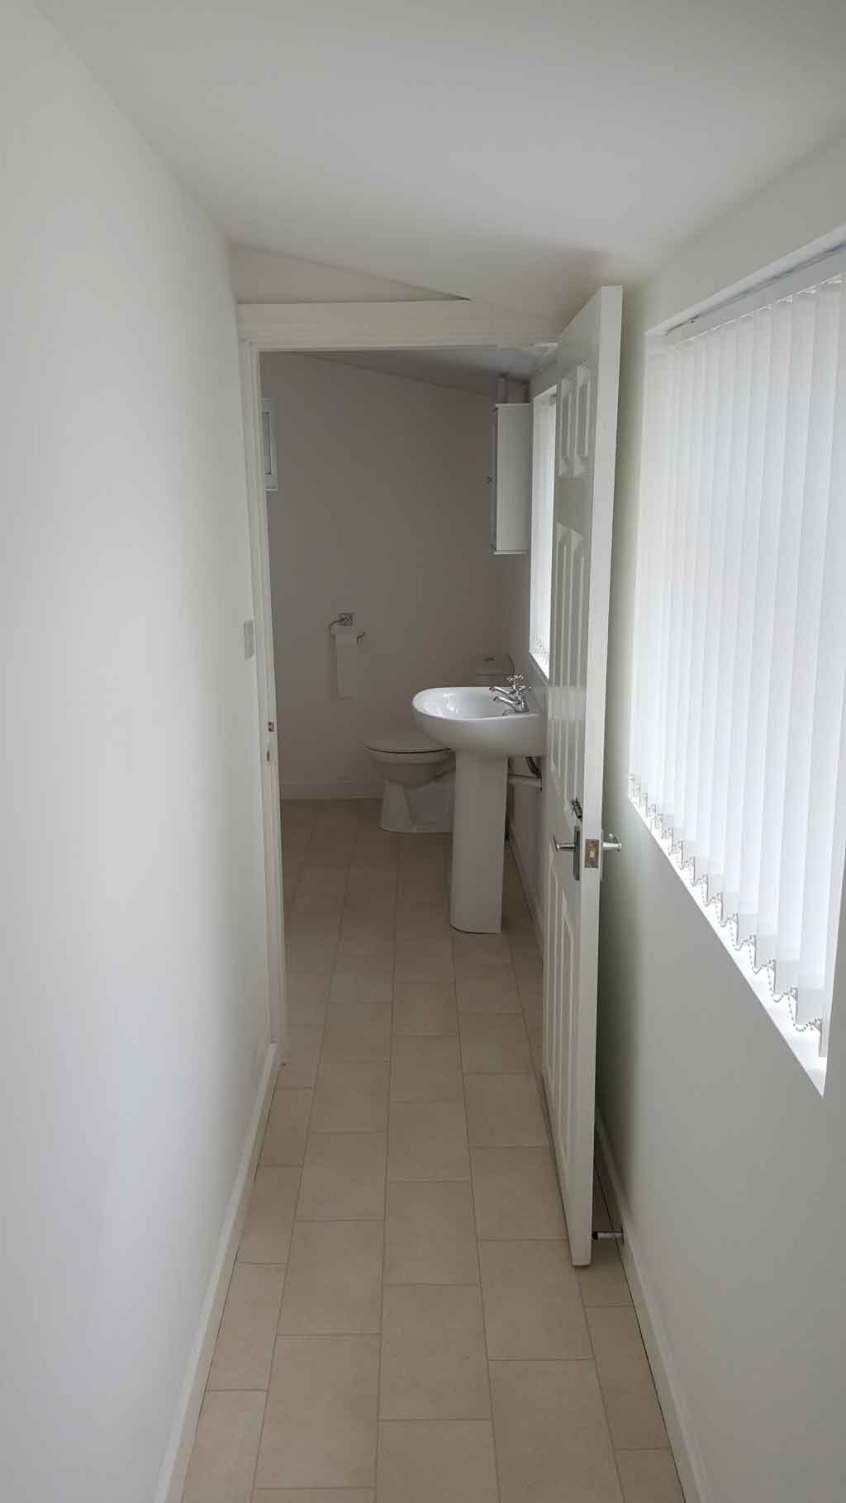 HMO bathroom refurbishment